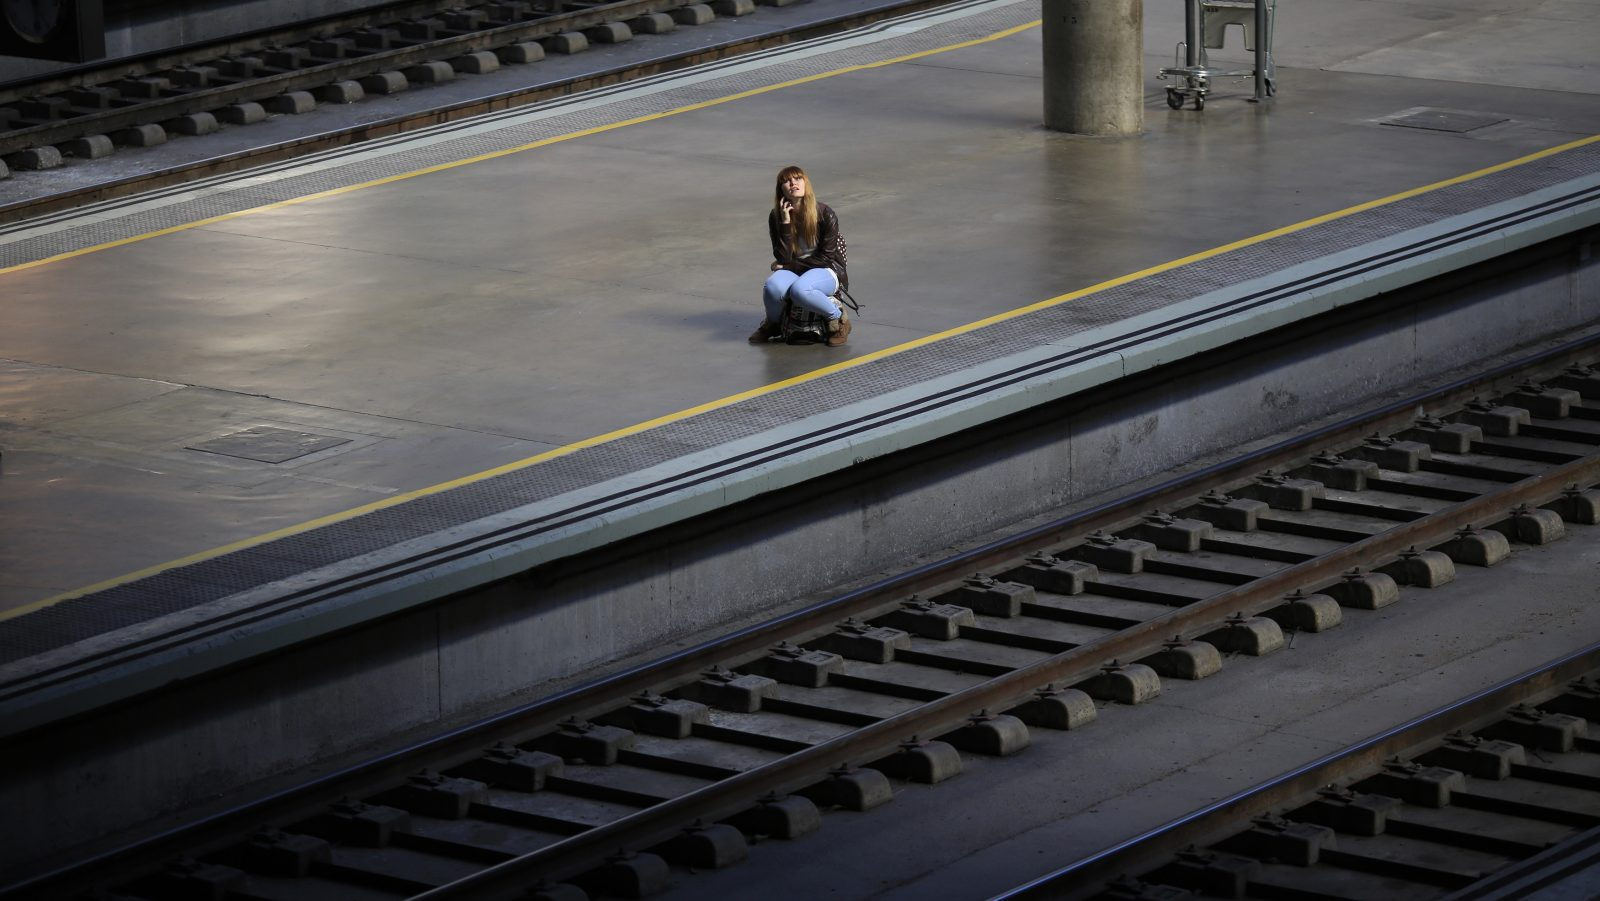 Woman alone on a train platform.